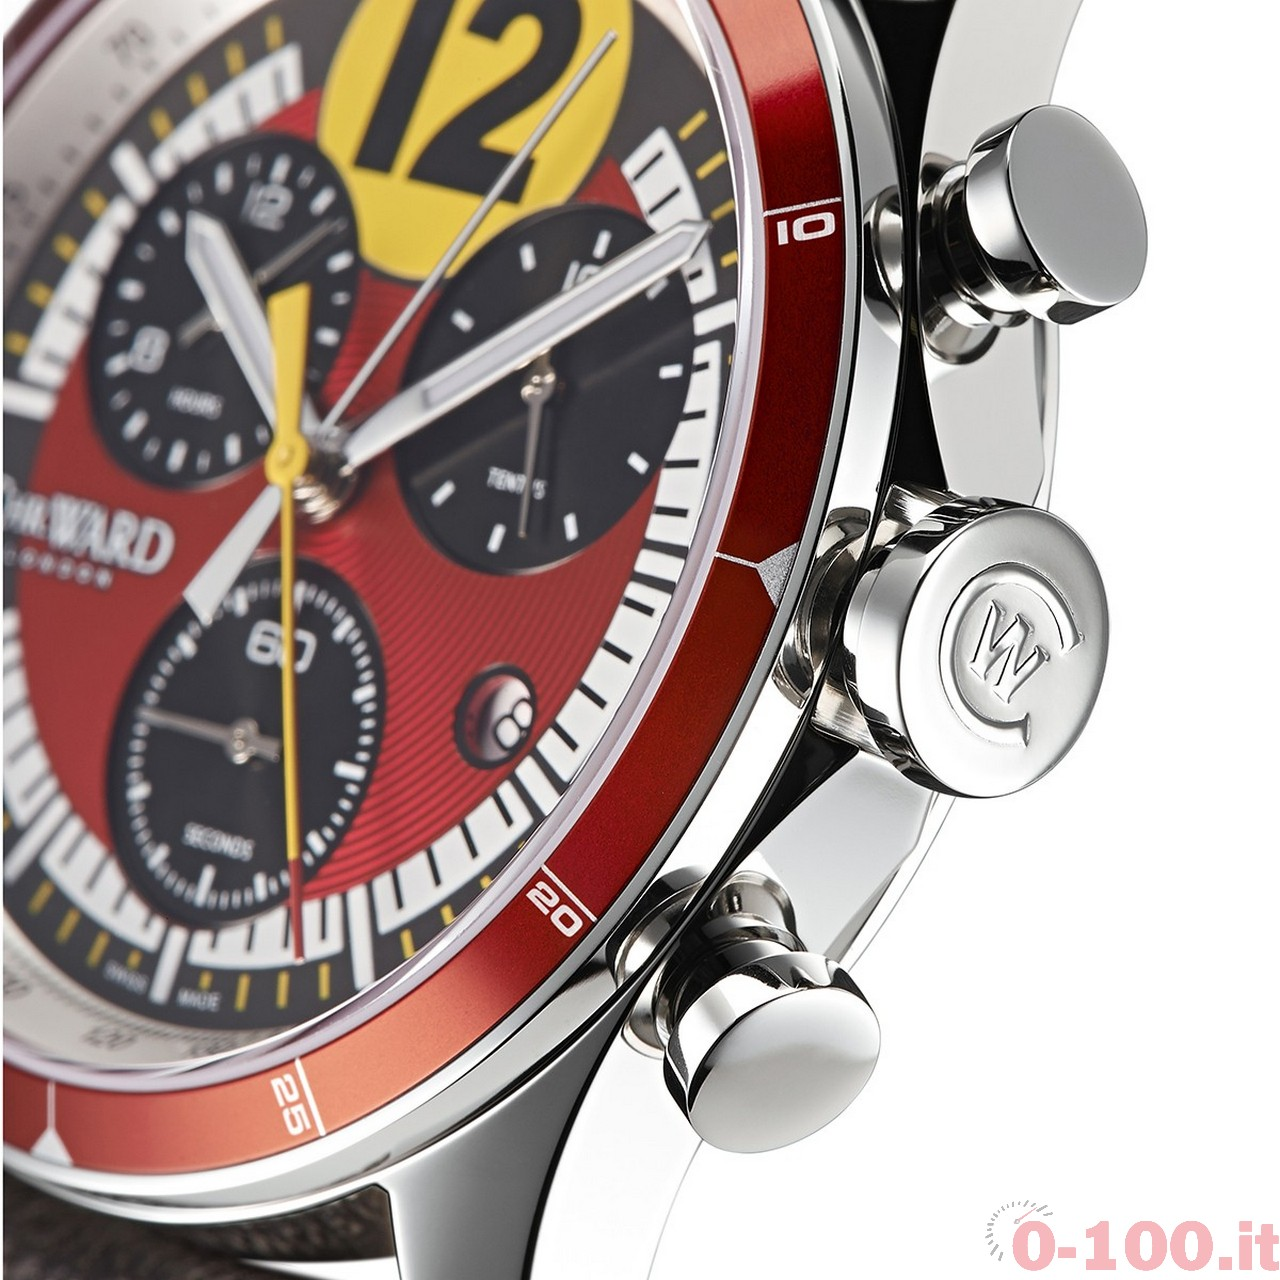 christopher-ward-tmb-art-metal-c70-3527gt-250-gto-chronometer-limited-edition_0-100_3